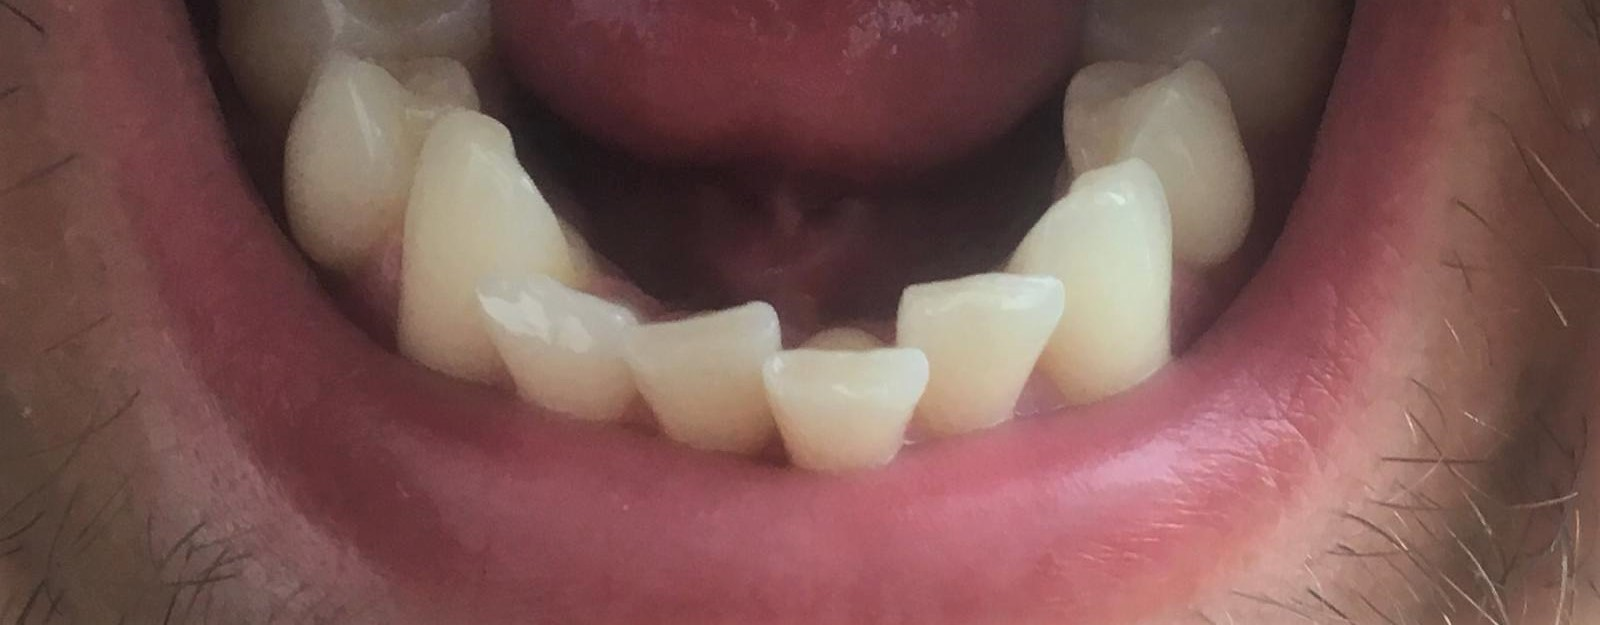 photo shows crowded teeth unsuitable for veneers